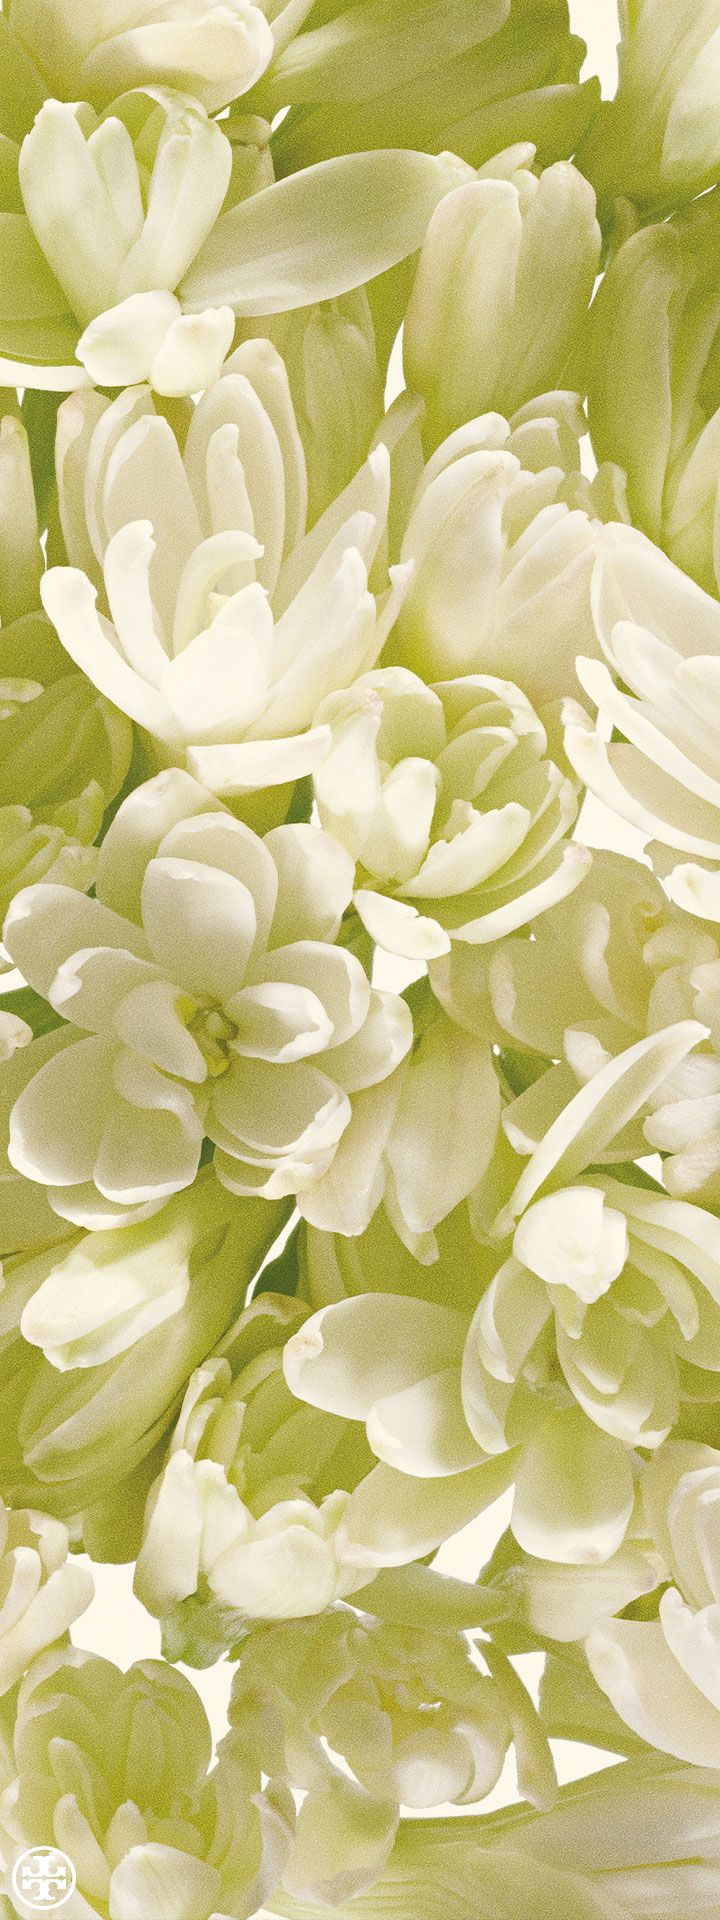 Lush Tuberose A Floral Note From Torys First Fragrance Tory